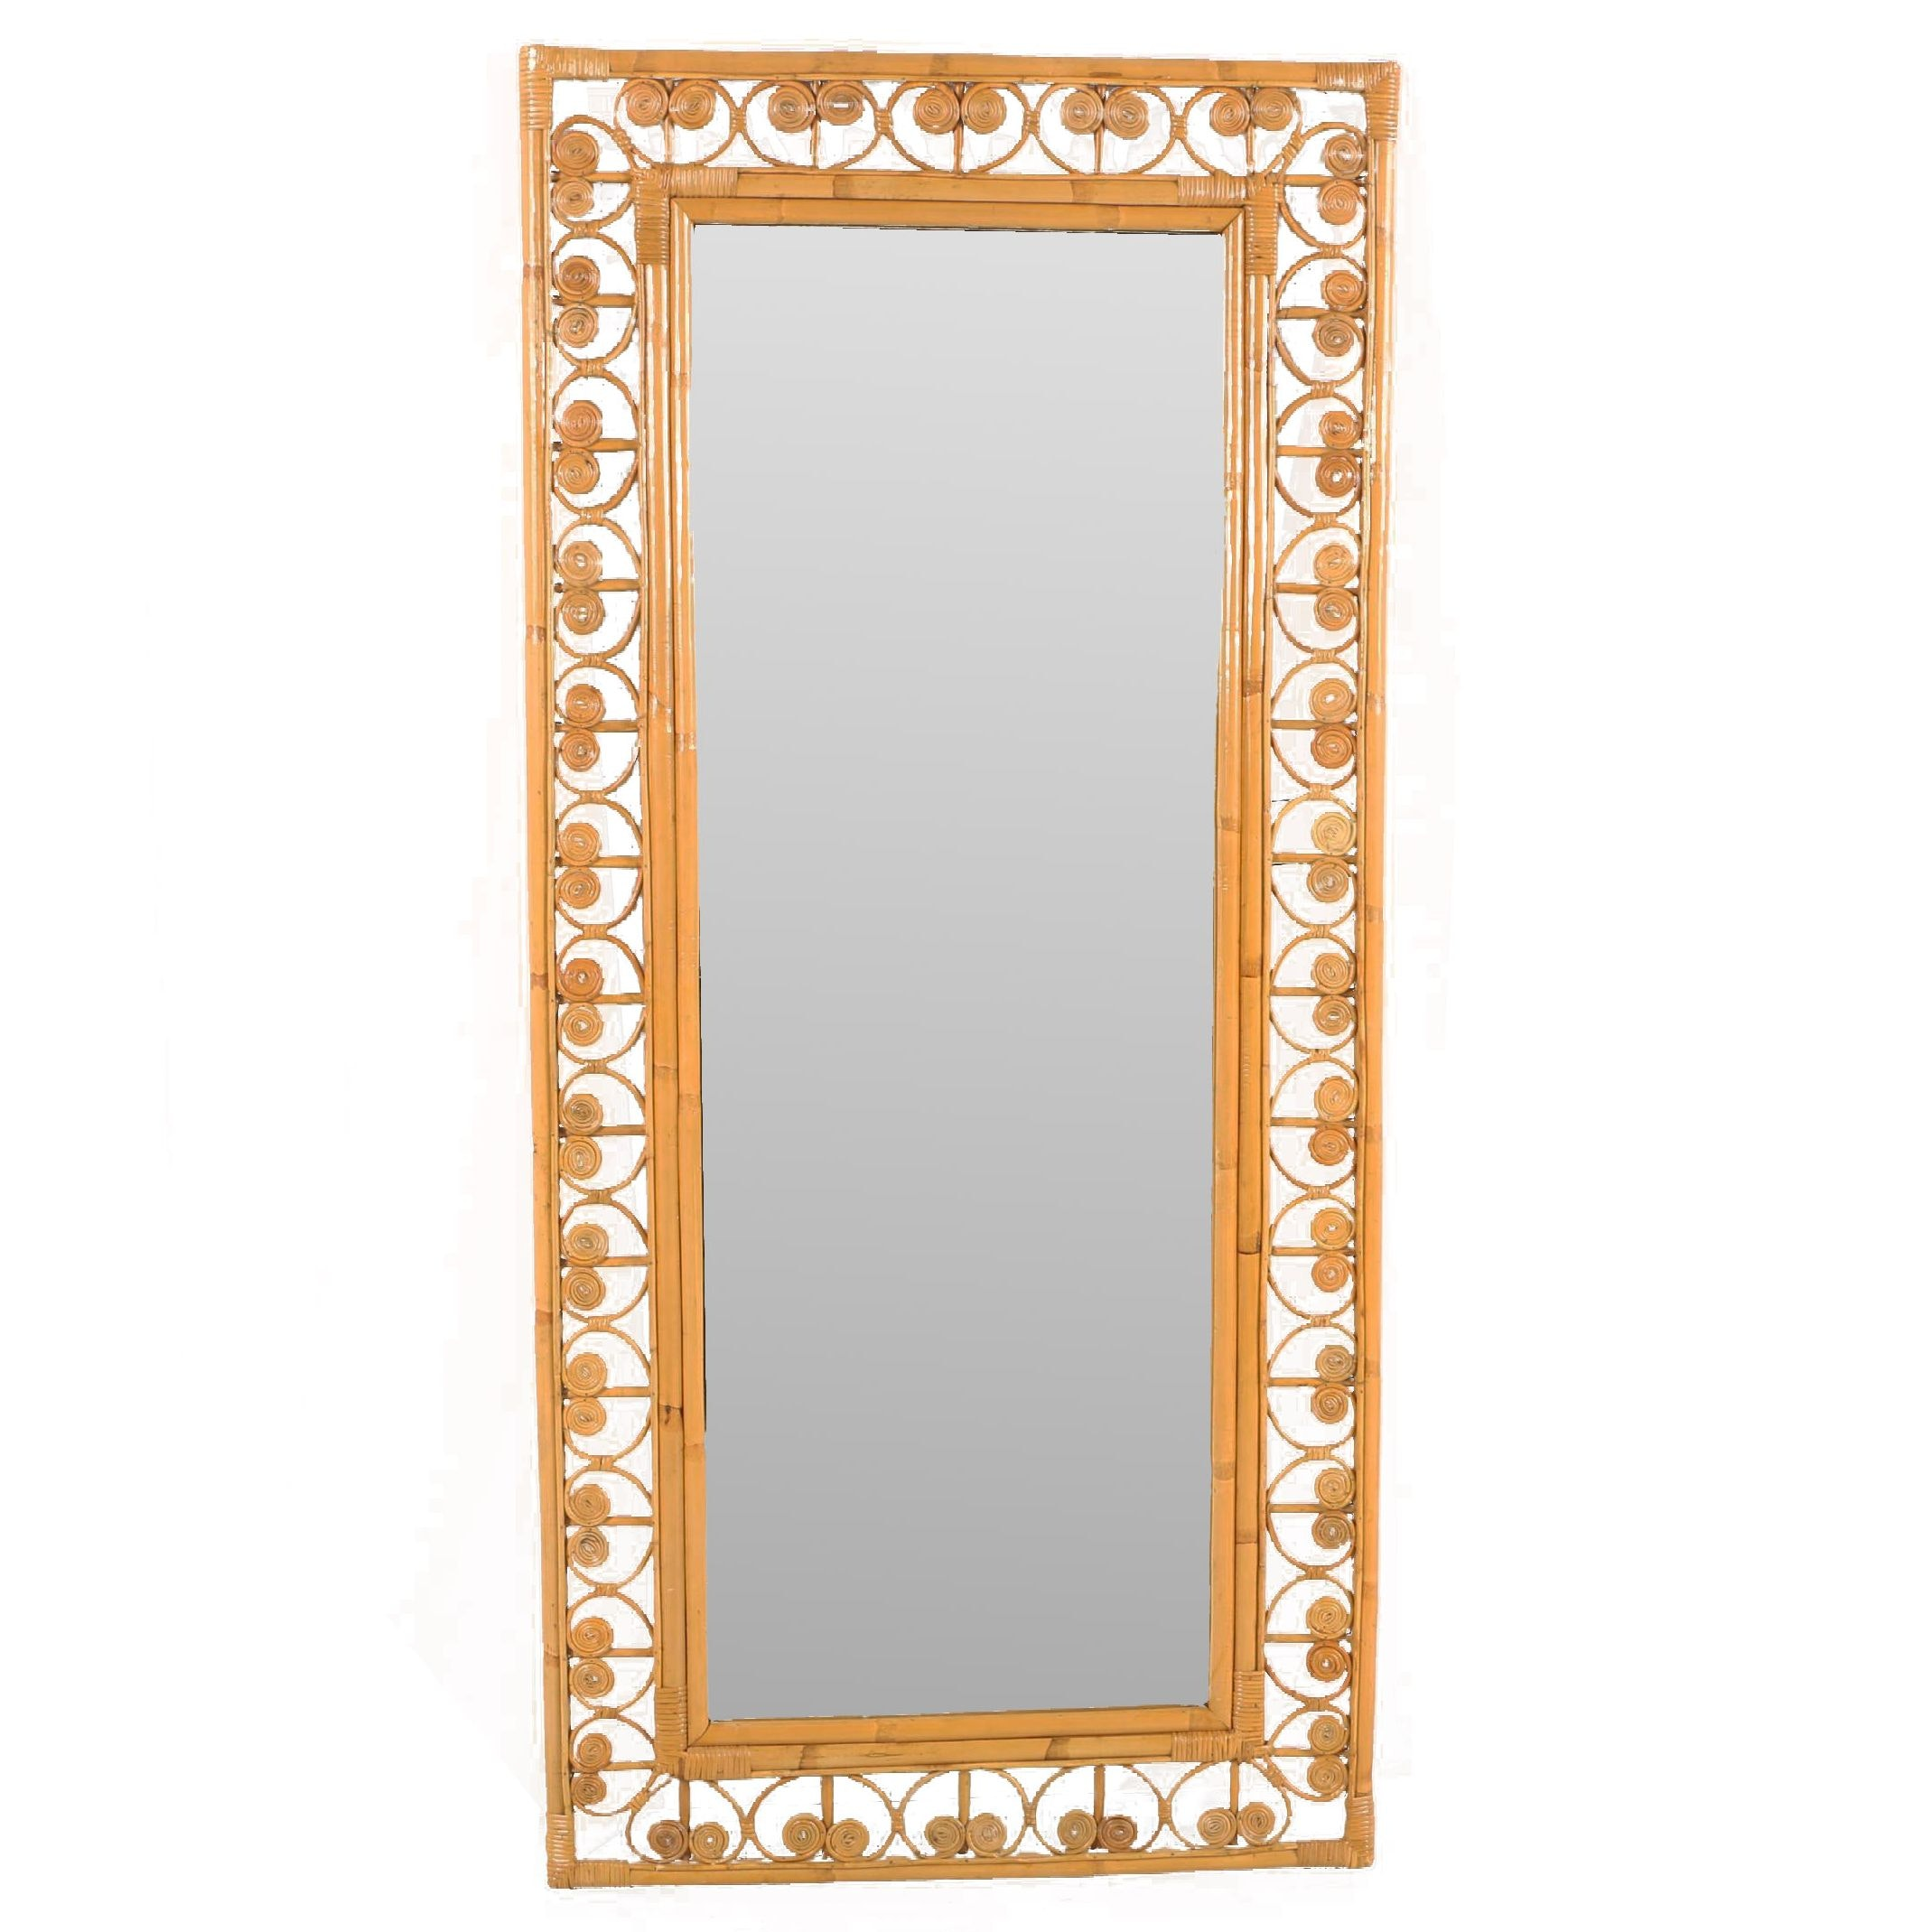 Bamboo Framed Full Length Wall Mirror with Scrolled Accents